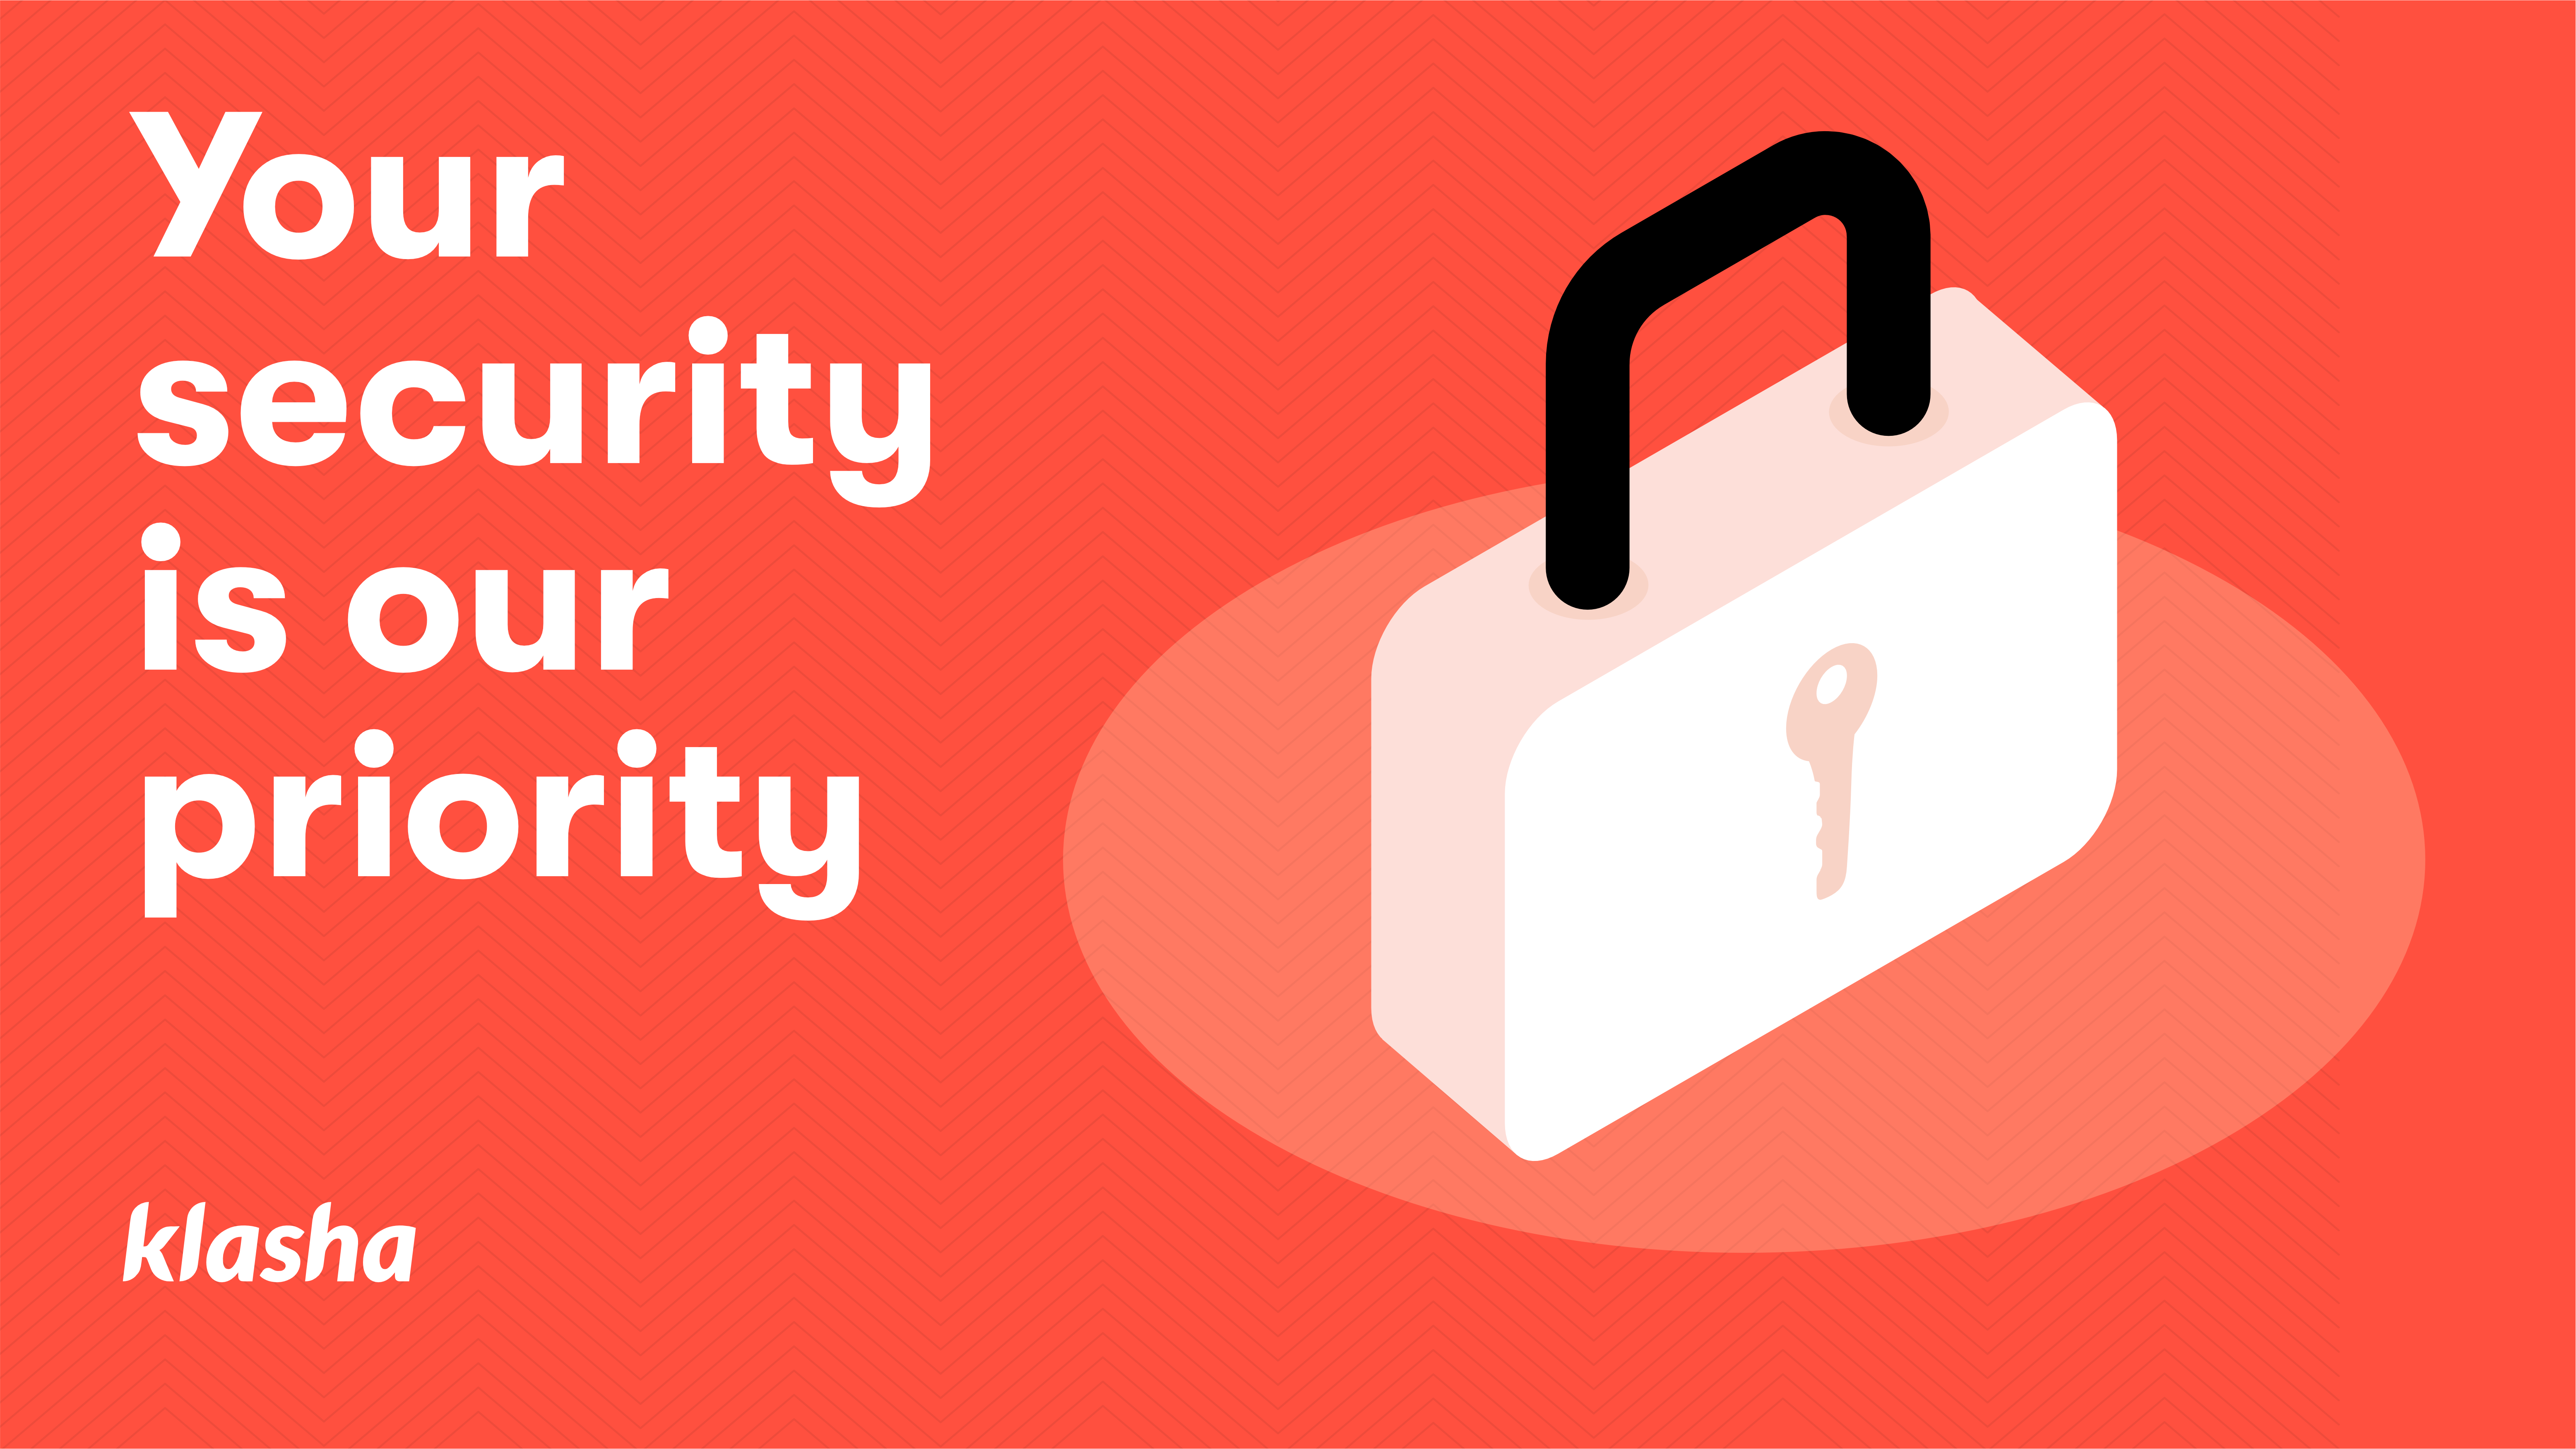 Your security is our priority